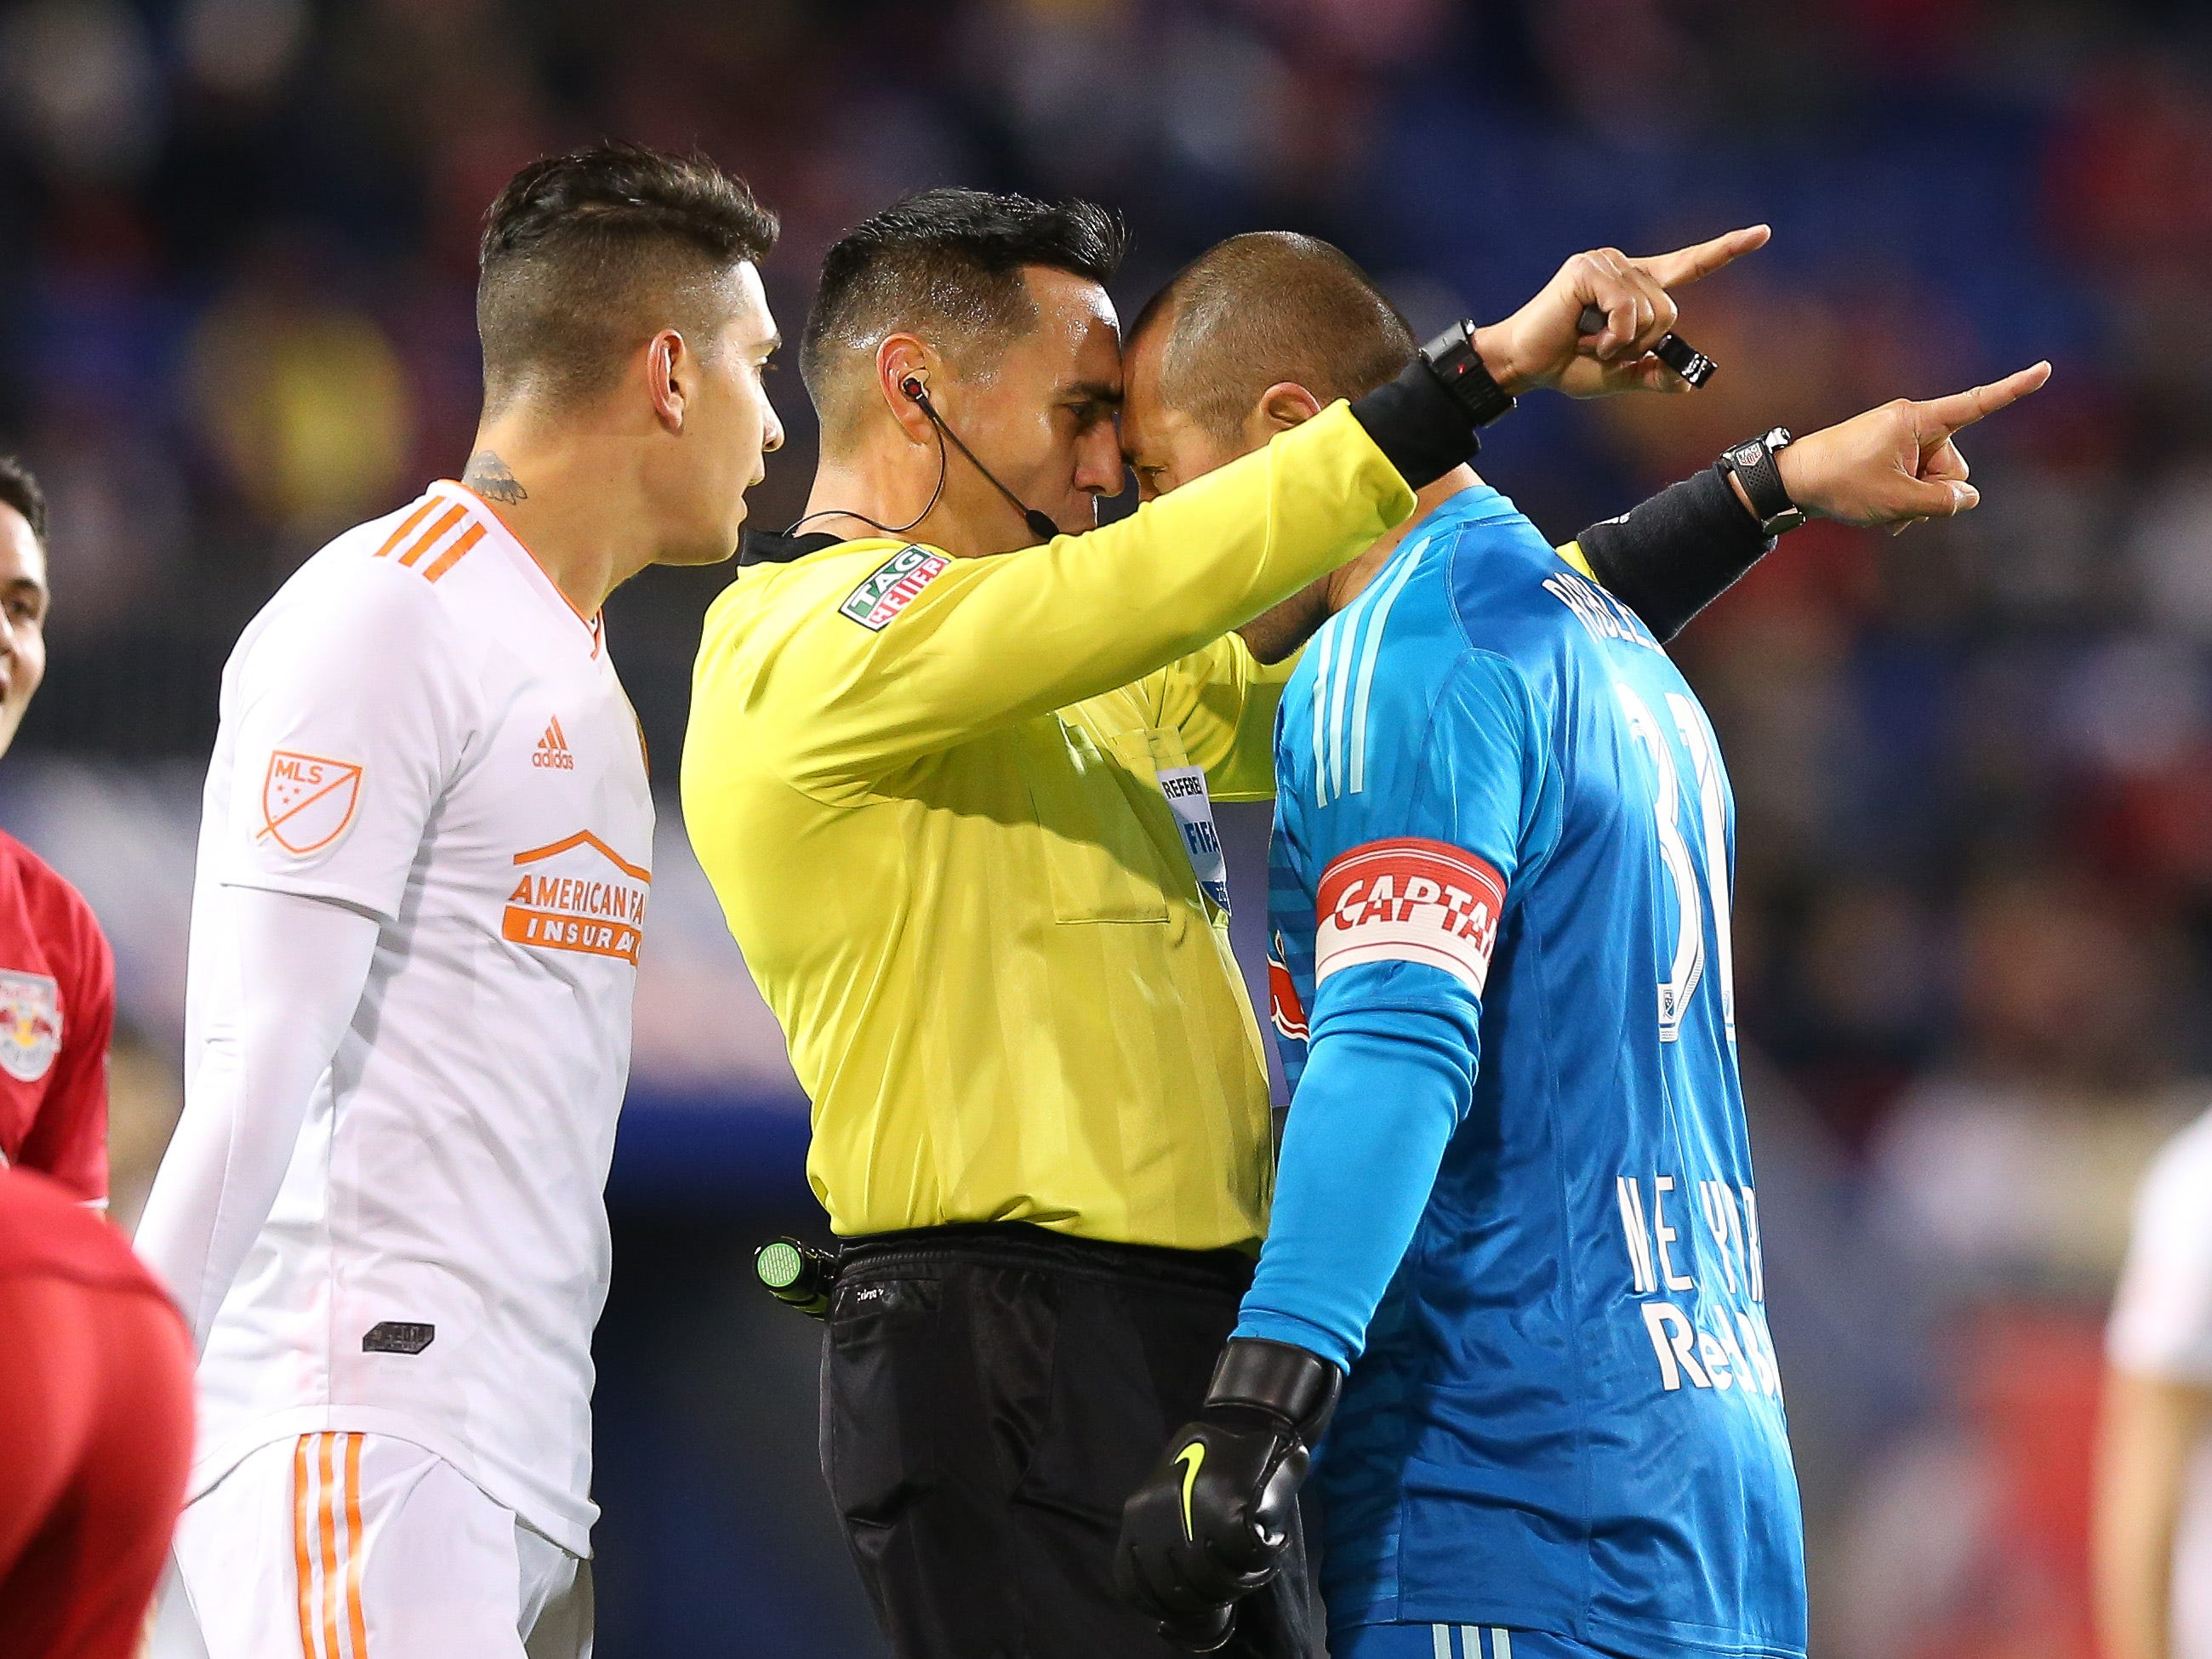 New York Red Bulls goalkeeper Luis Robles argues with referee Jair Antonio Marrufo during the first half of the second leg of the MLS Eastern Conference Championship at Red Bull Arena.